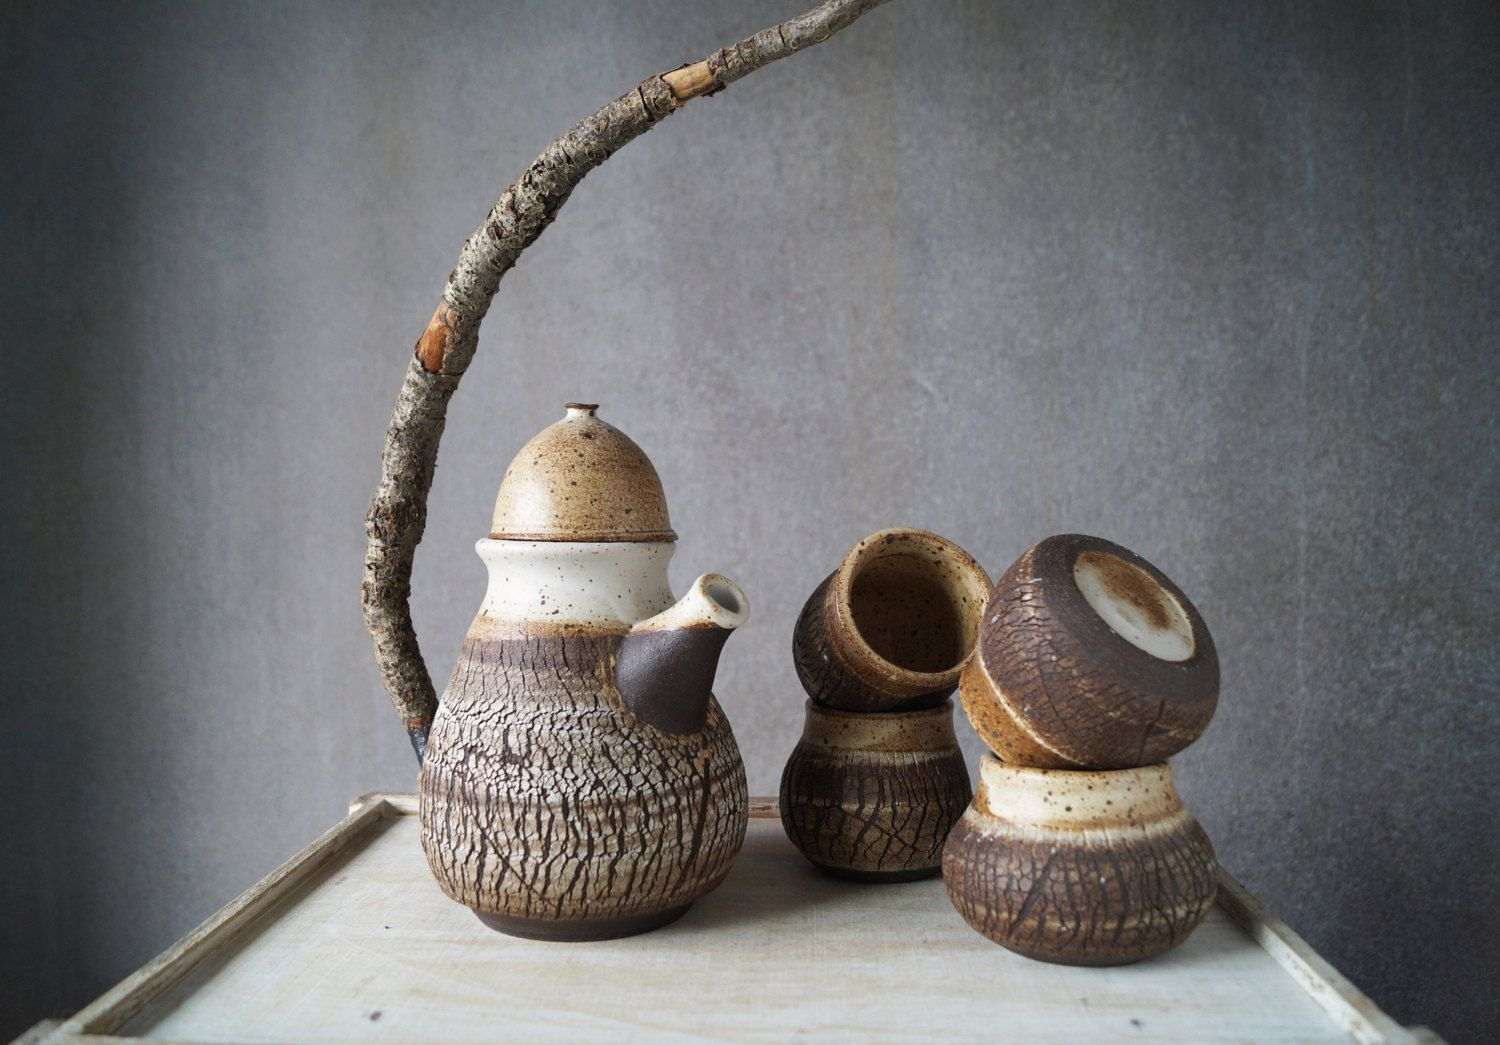 Handmade Ceramic Teapot Set With Real Wood Twig Handle Wheel Etsy Ceramic Teapot Set Handmade Ceramics Tea Pots